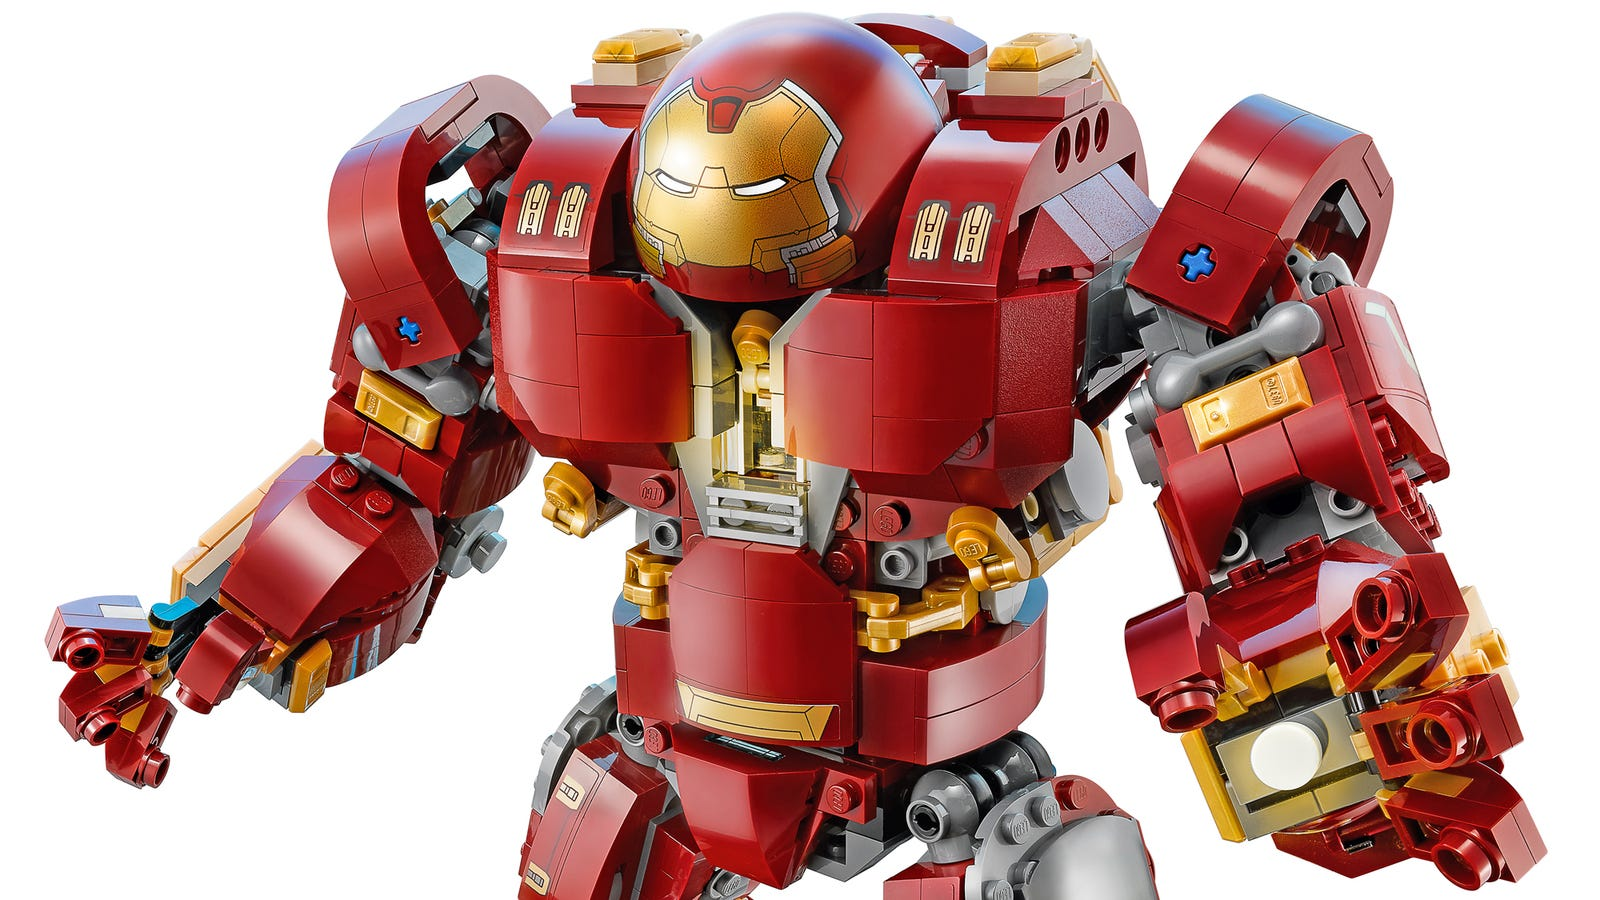 Iron Mans Hulkbuster Suit Is Getting The Giant Lego Set It Deserves